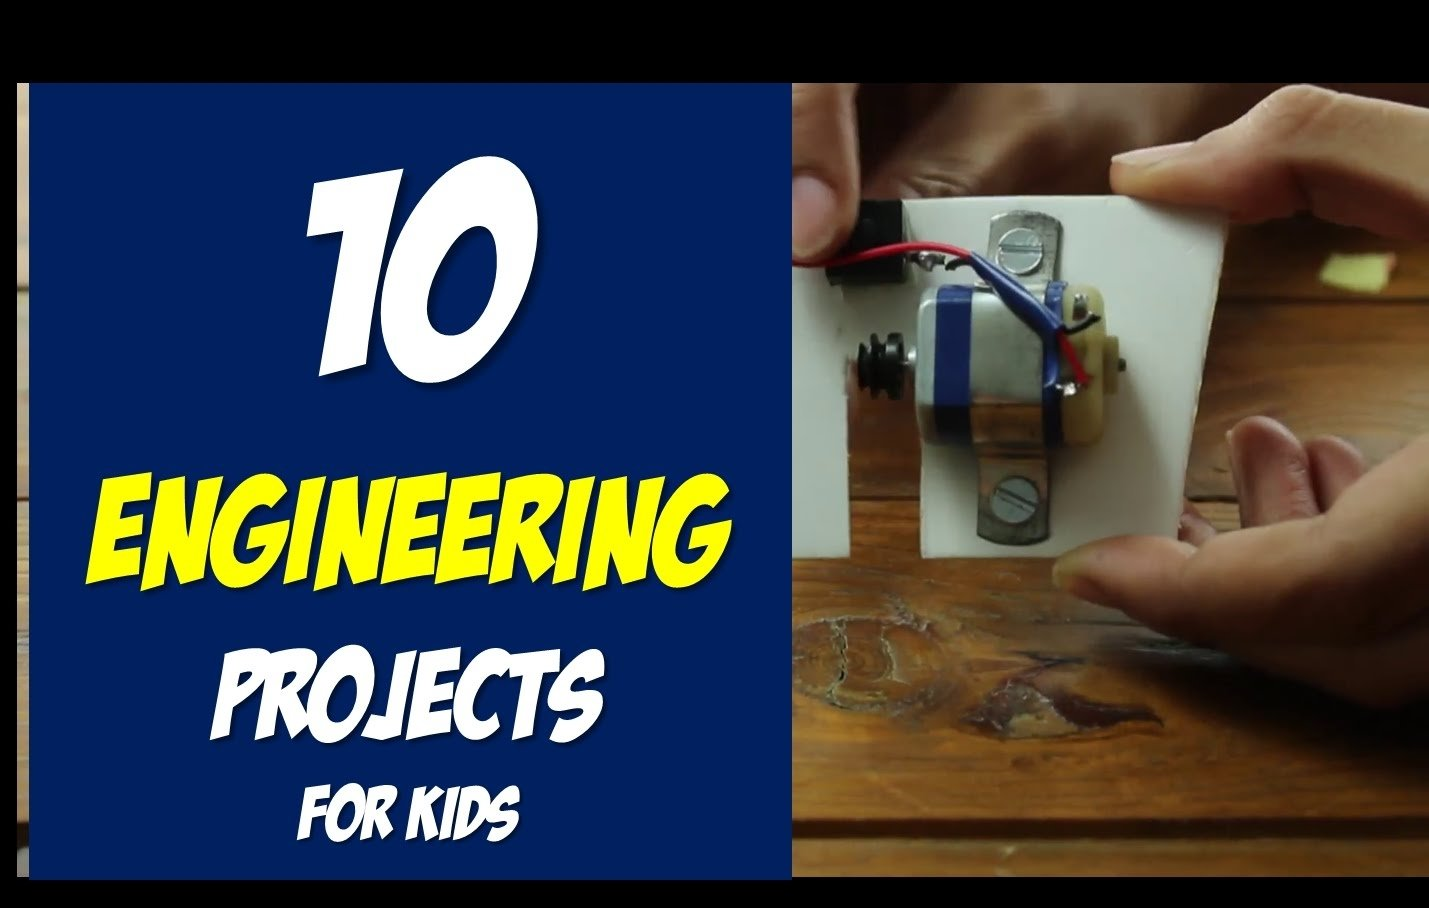 10 Stylish Science Projects Ideas For Kids top 10 fun engineering science projects for kids in school or home 2020